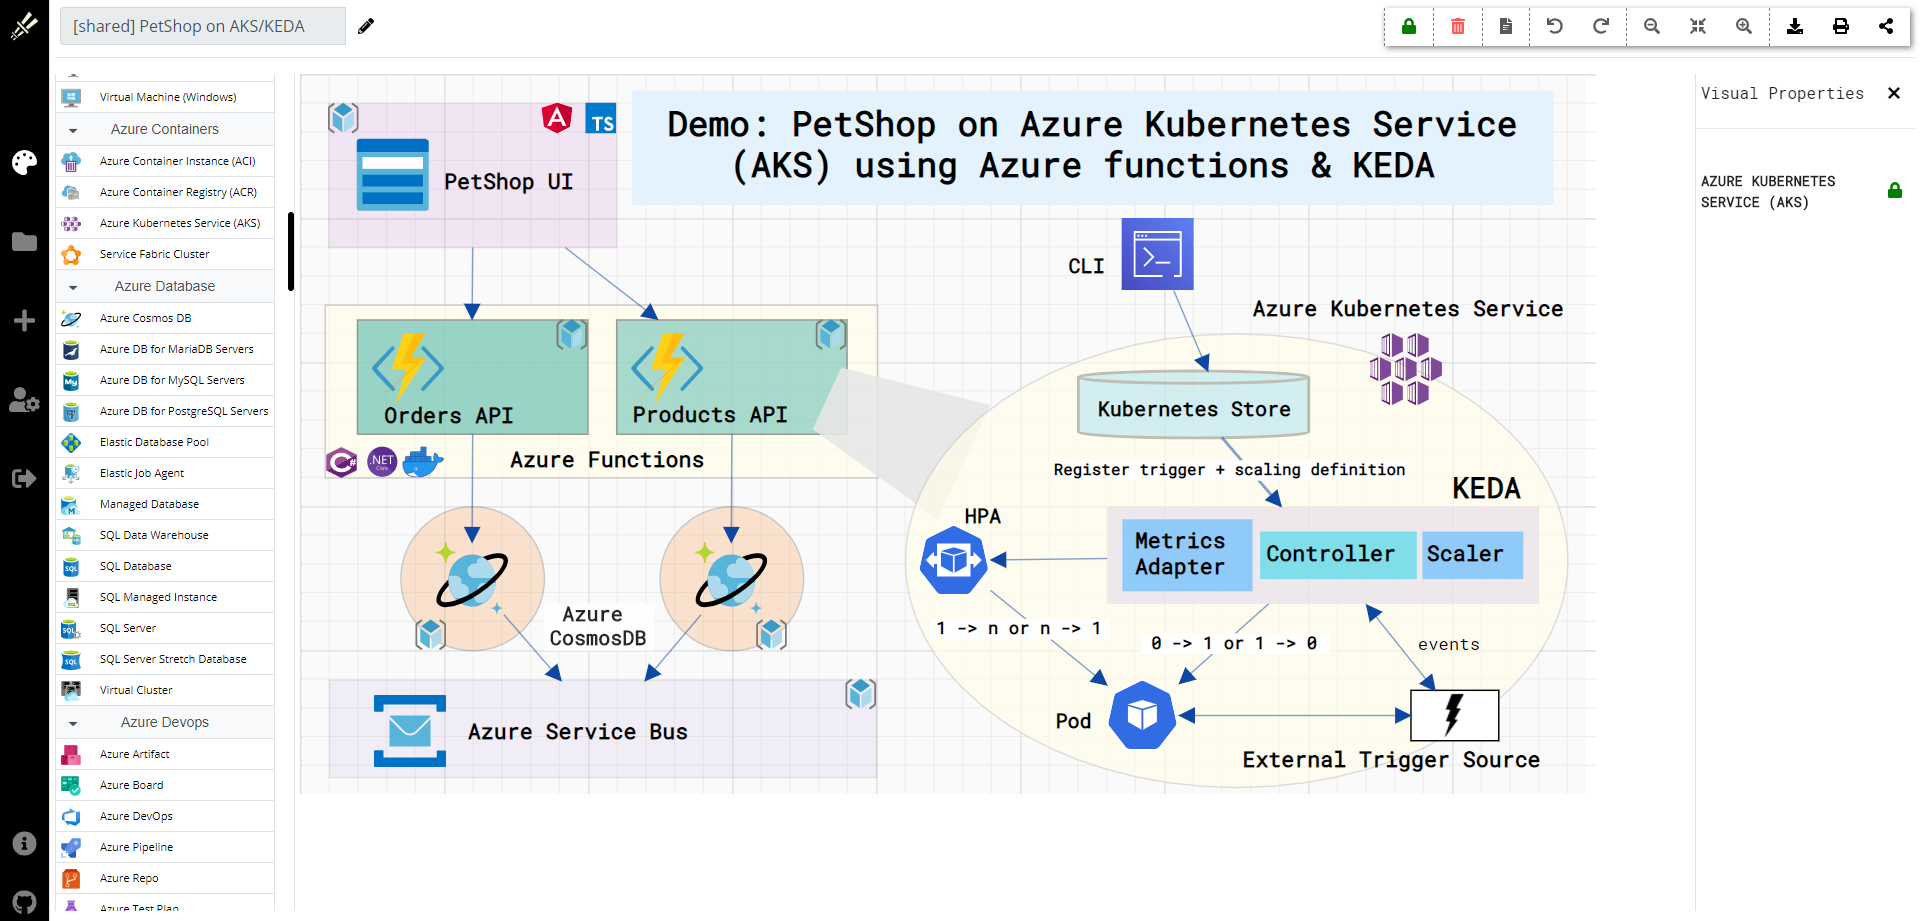 petshop on aks using azure functions and keda